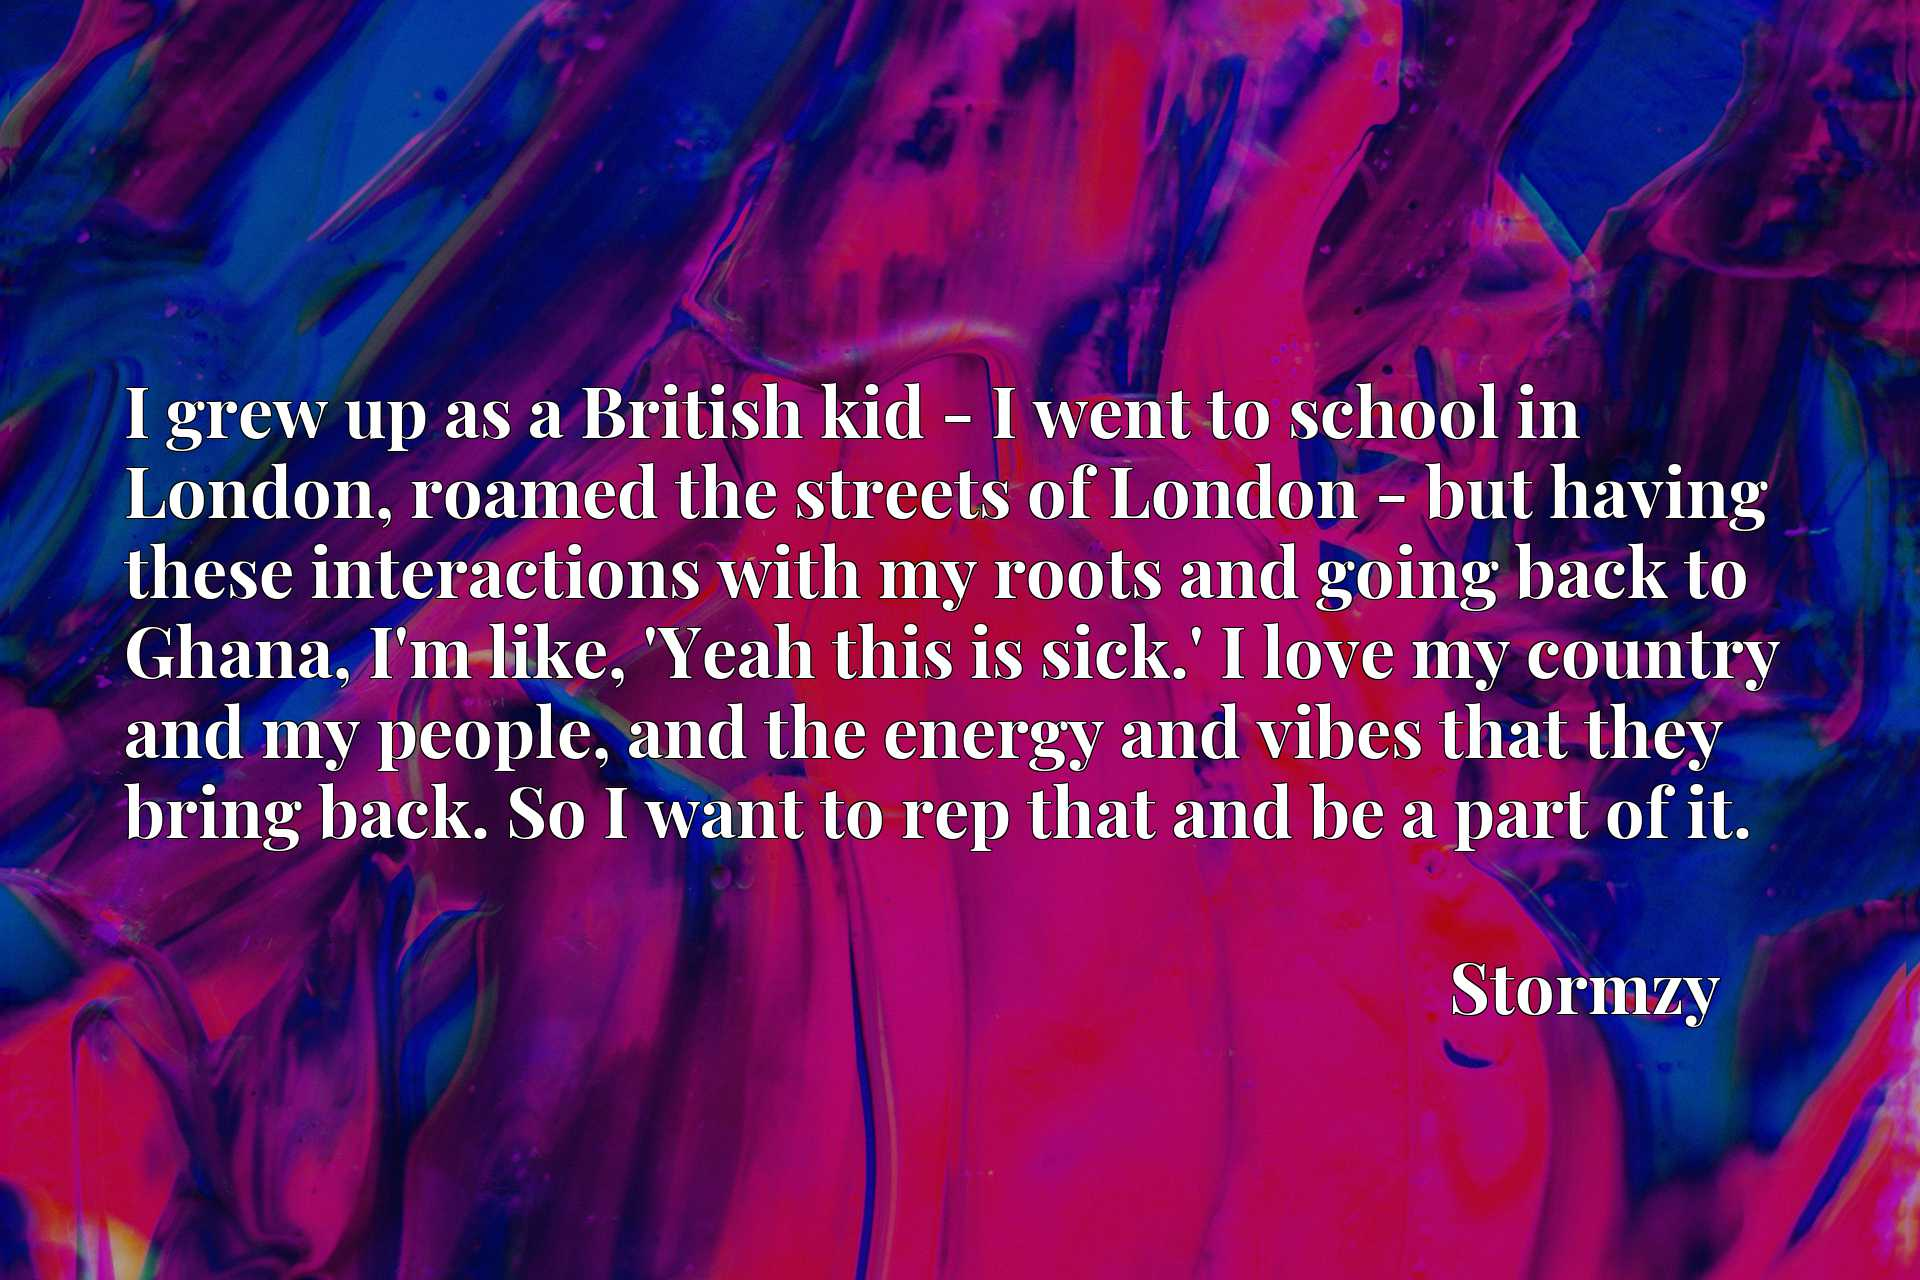 Quote Picture :I grew up as a British kid - I went to school in London, roamed the streets of London - but having these interactions with my roots and going back to Ghana, I'm like, 'Yeah this is sick.' I love my country and my people, and the energy and vibes that they bring back. So I want to rep that and be a part of it.